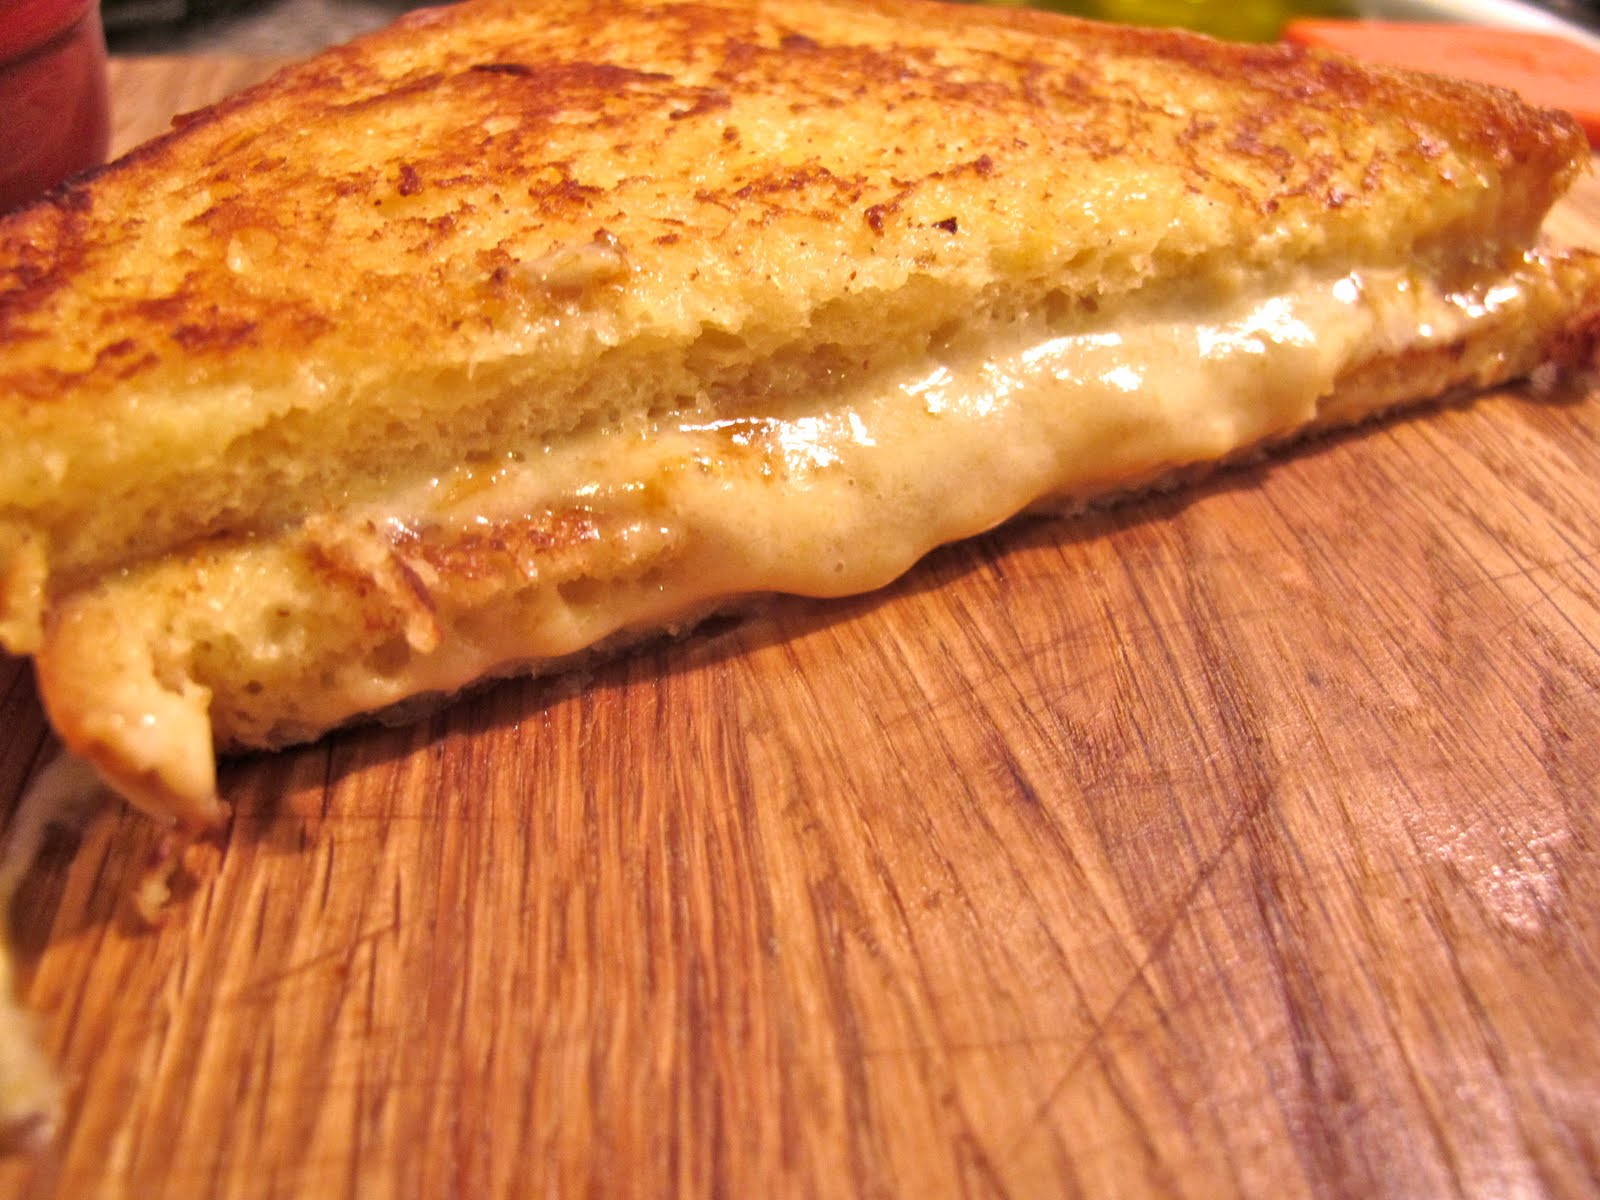 Don't Forget, Melted Cheese Creates A Strong Bond… No Matter If It's  Between Two Pieces Of Bread Or Between A Family!